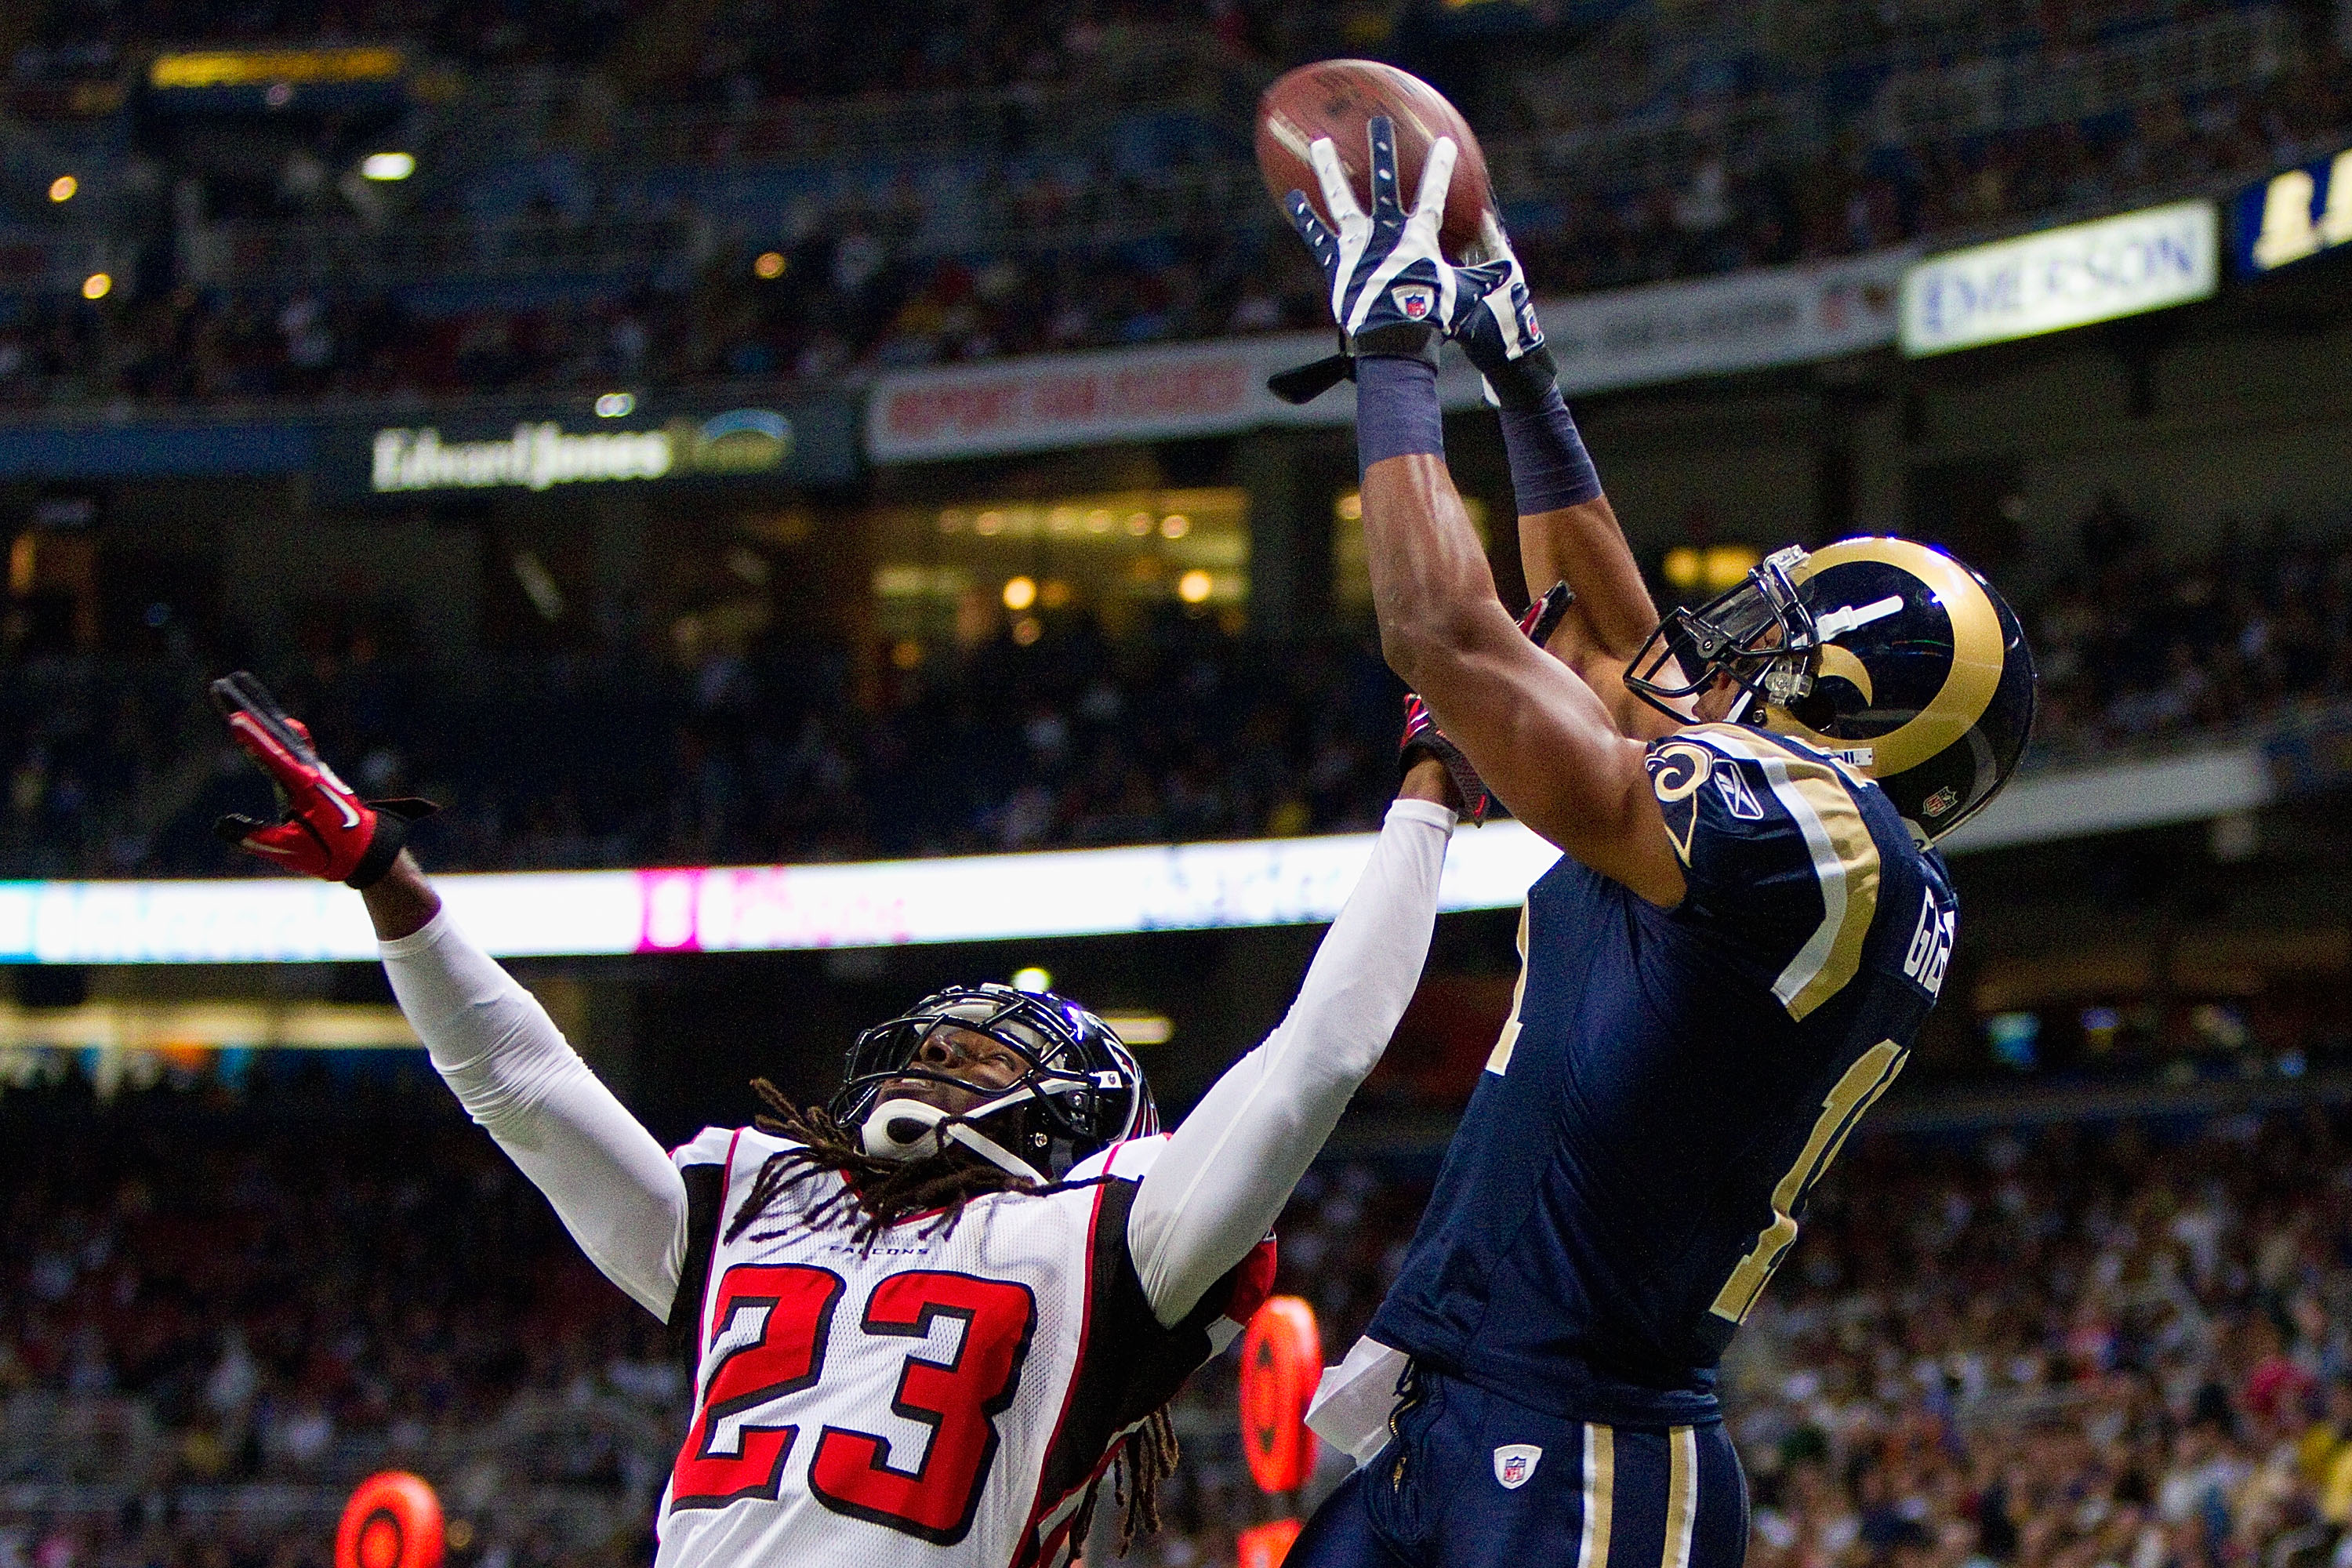 ST. LOUIS - NOVEMBER 21: Brandon Gibson #11 of the St. Louis Rams catches a touchdown pass against Dunta Robinson #23 of the Atlanta Falcons at the Edward Jones Dome on November 21, 2010 in St. Louis, Missouri.  The Falcons beat the Rams 34-17.  (Photo by